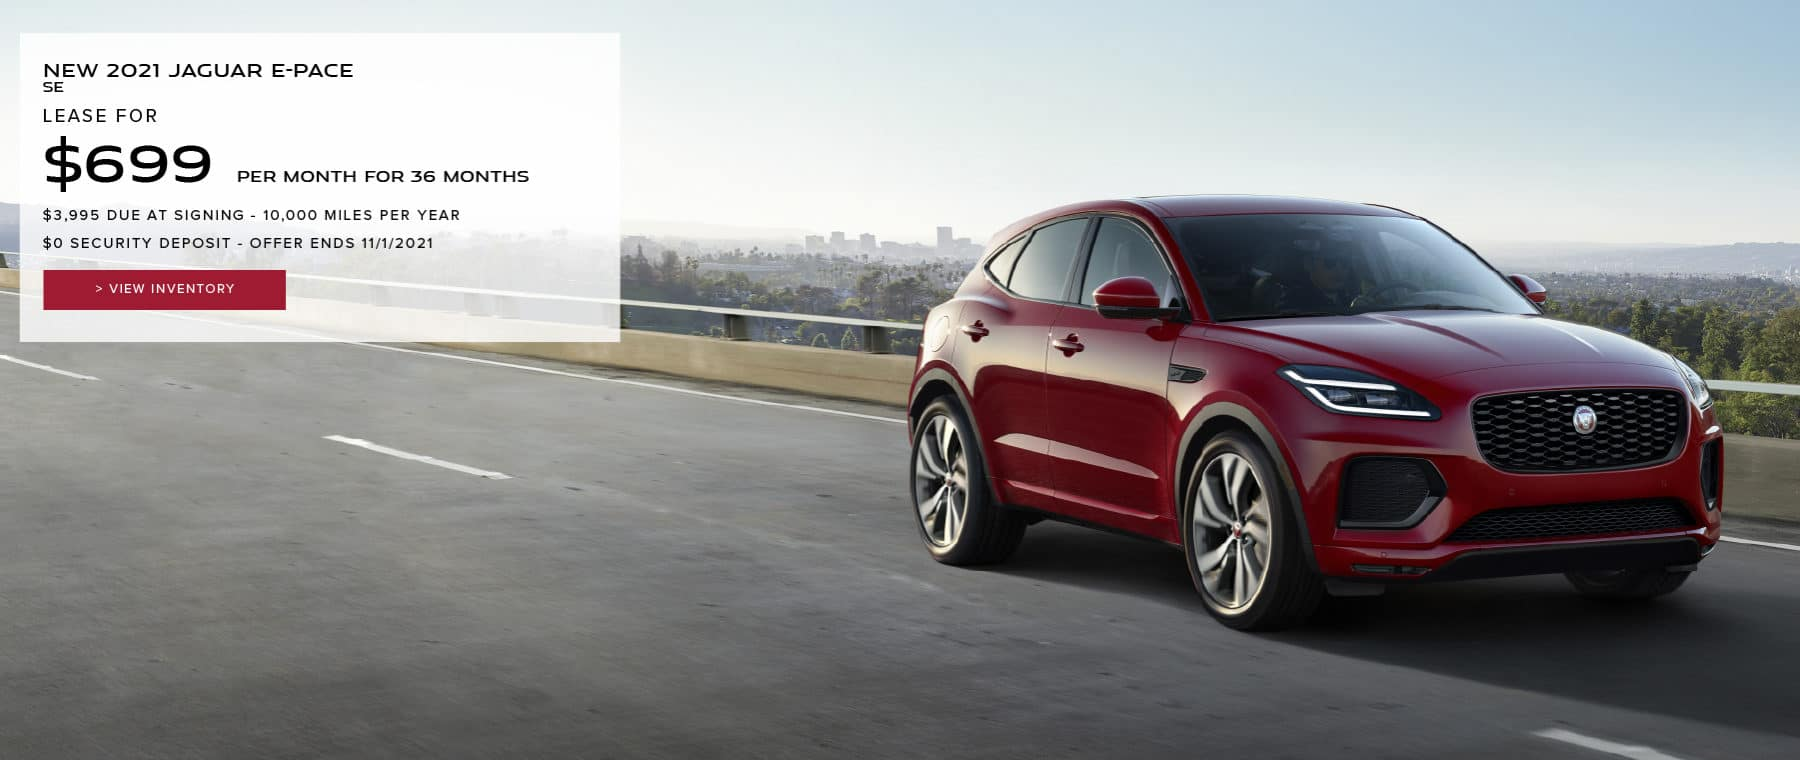 NEW 2021 JAGUAR E-PACE SE. $699 PER MONTH. 36 MONTH LEASE TERM. $3,995 CASH DUE AT SIGNING. $0 SECURITY DEPOSIT. 10,000 MILES PER YEAR. EXCLUDES RETAILER FEES, TAXES, TITLE AND REGISTRATION FEES, PROCESSING FEE AND ANY EMISSION TESTING CHARGE. OFFER ENDS 11/1/2021. VIEW INVENTORY. RED JAGUAR E-PACE DRIVING OUTSIDE OF CITY.